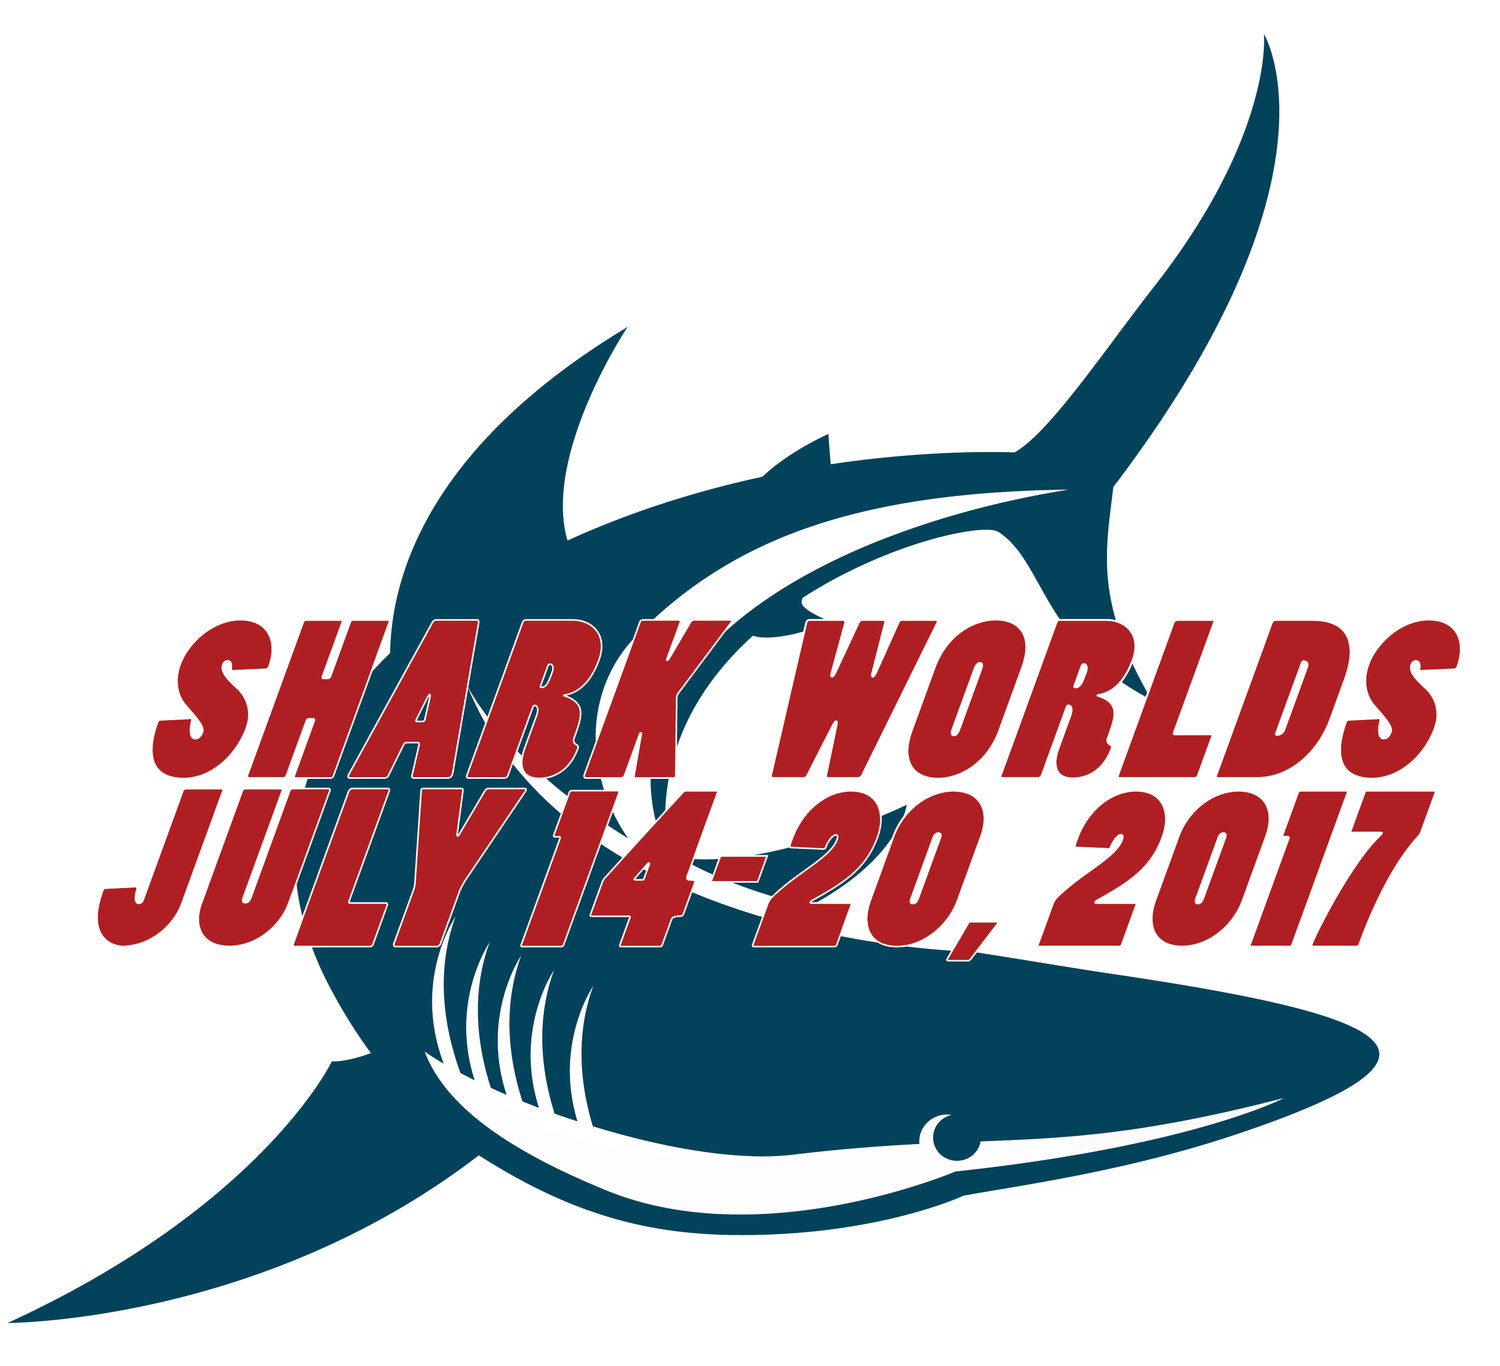 Shark World Championship